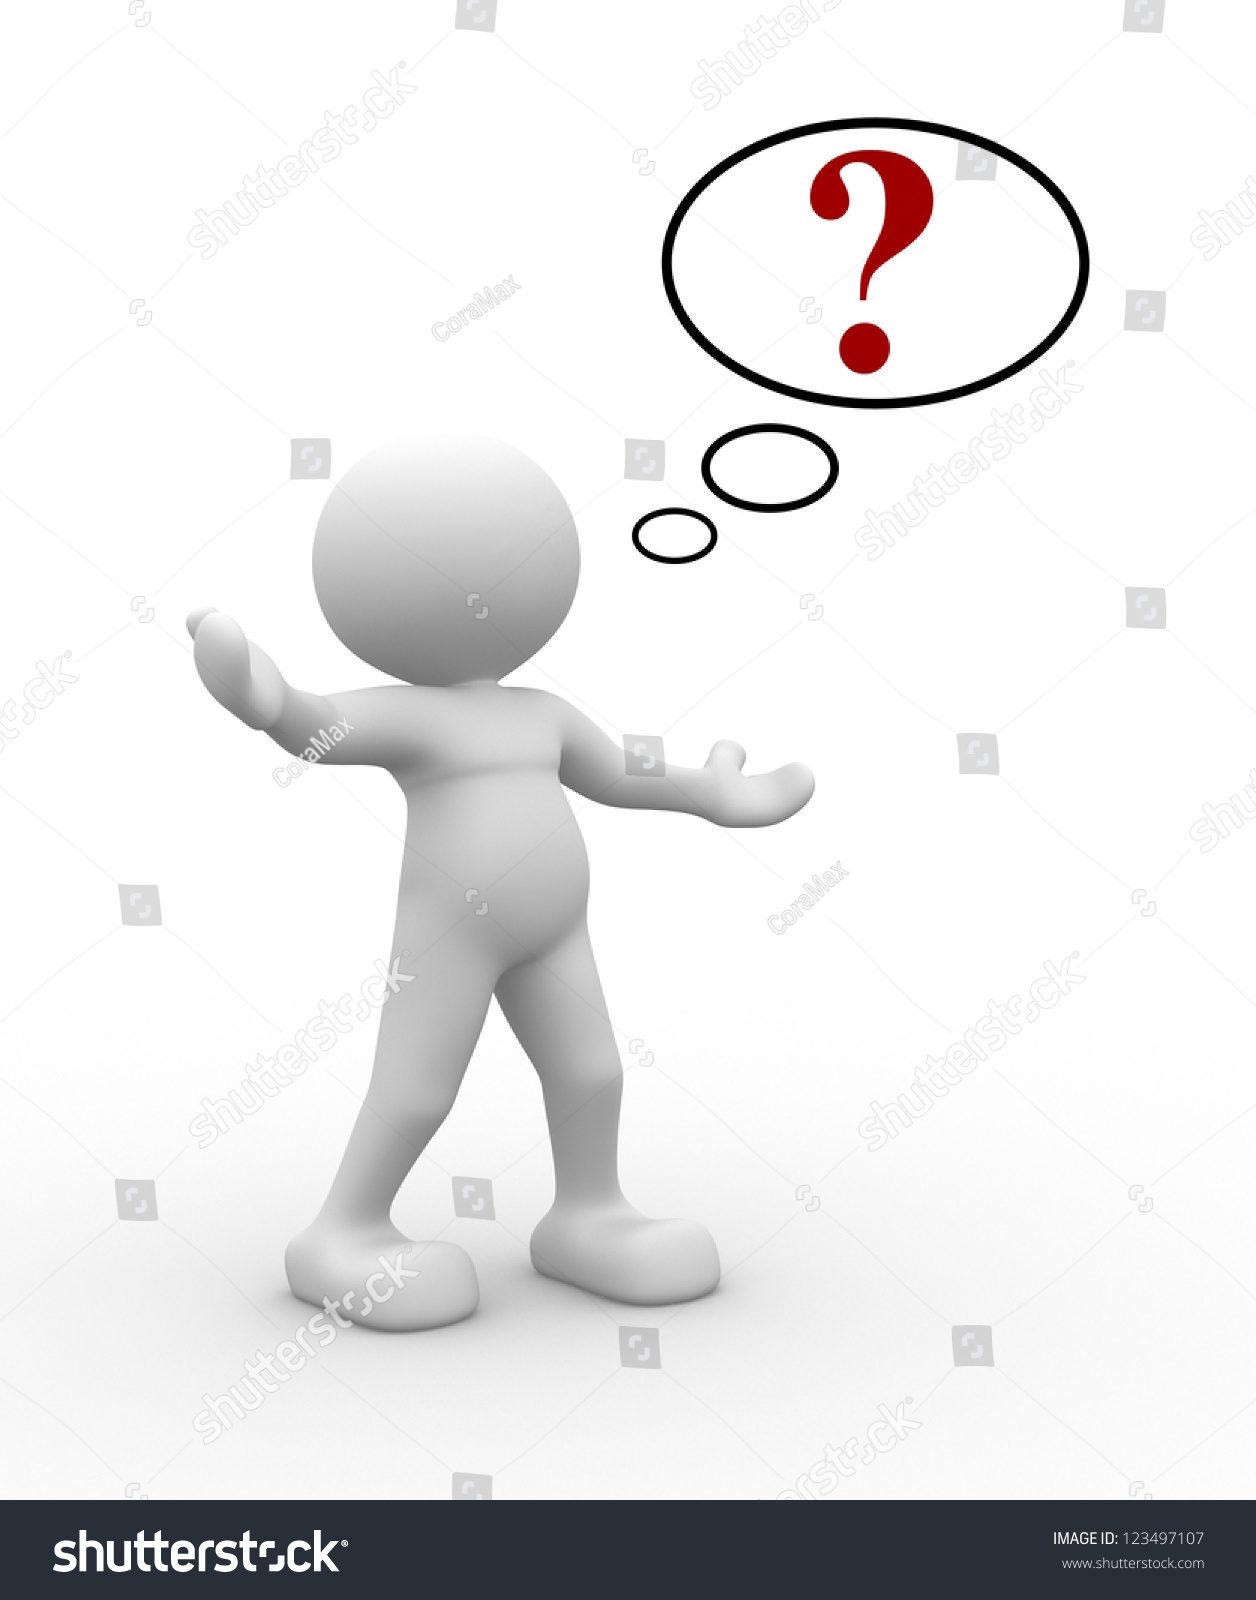 3d person with magnifying glass and question mark stock images image - 3d People Man People With Red Question Mark In Speech Bubble